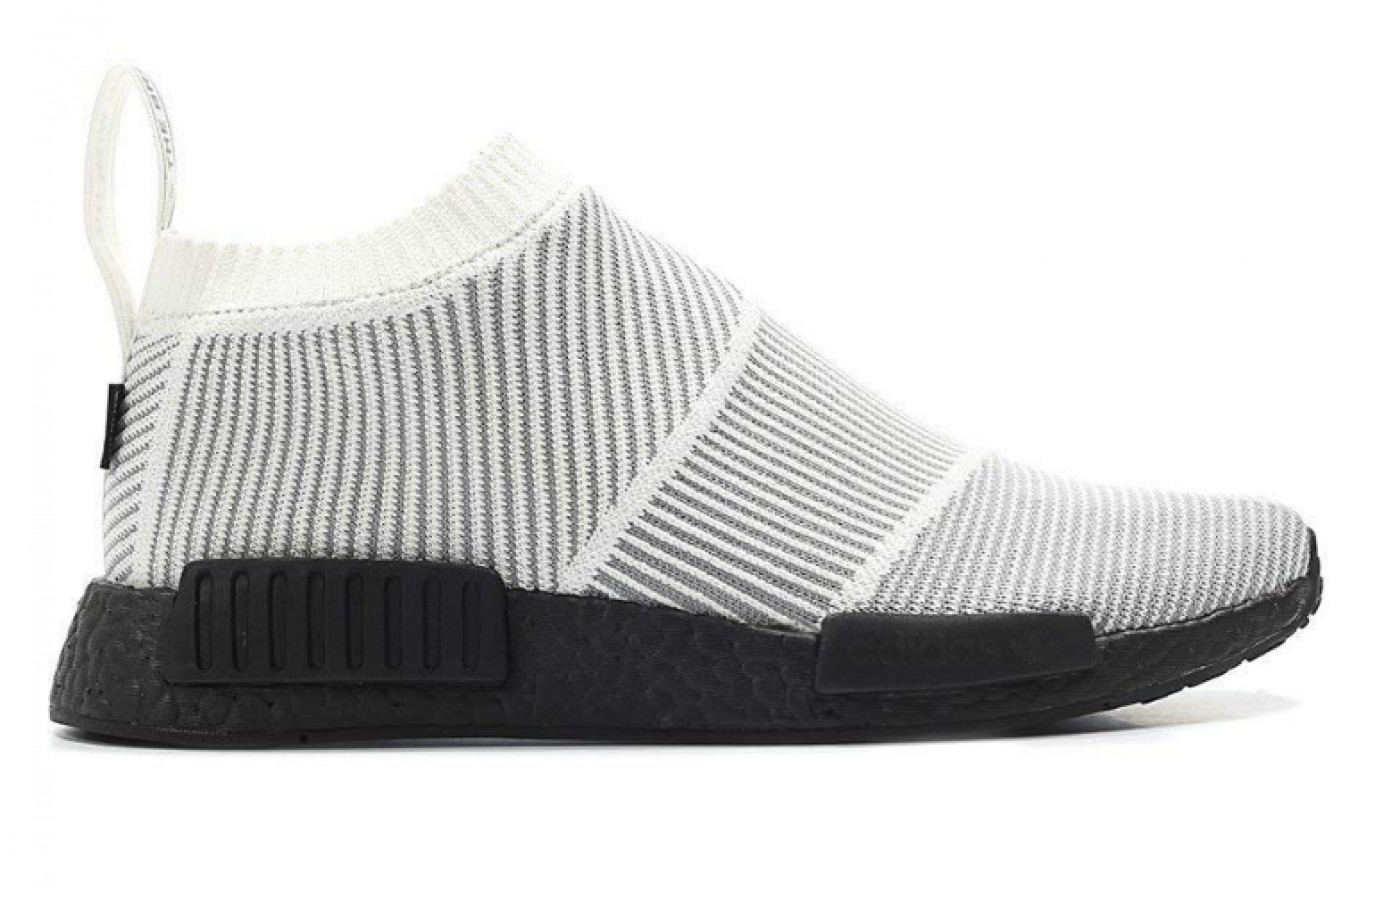 NMD_CS1 Primeknit Outsole